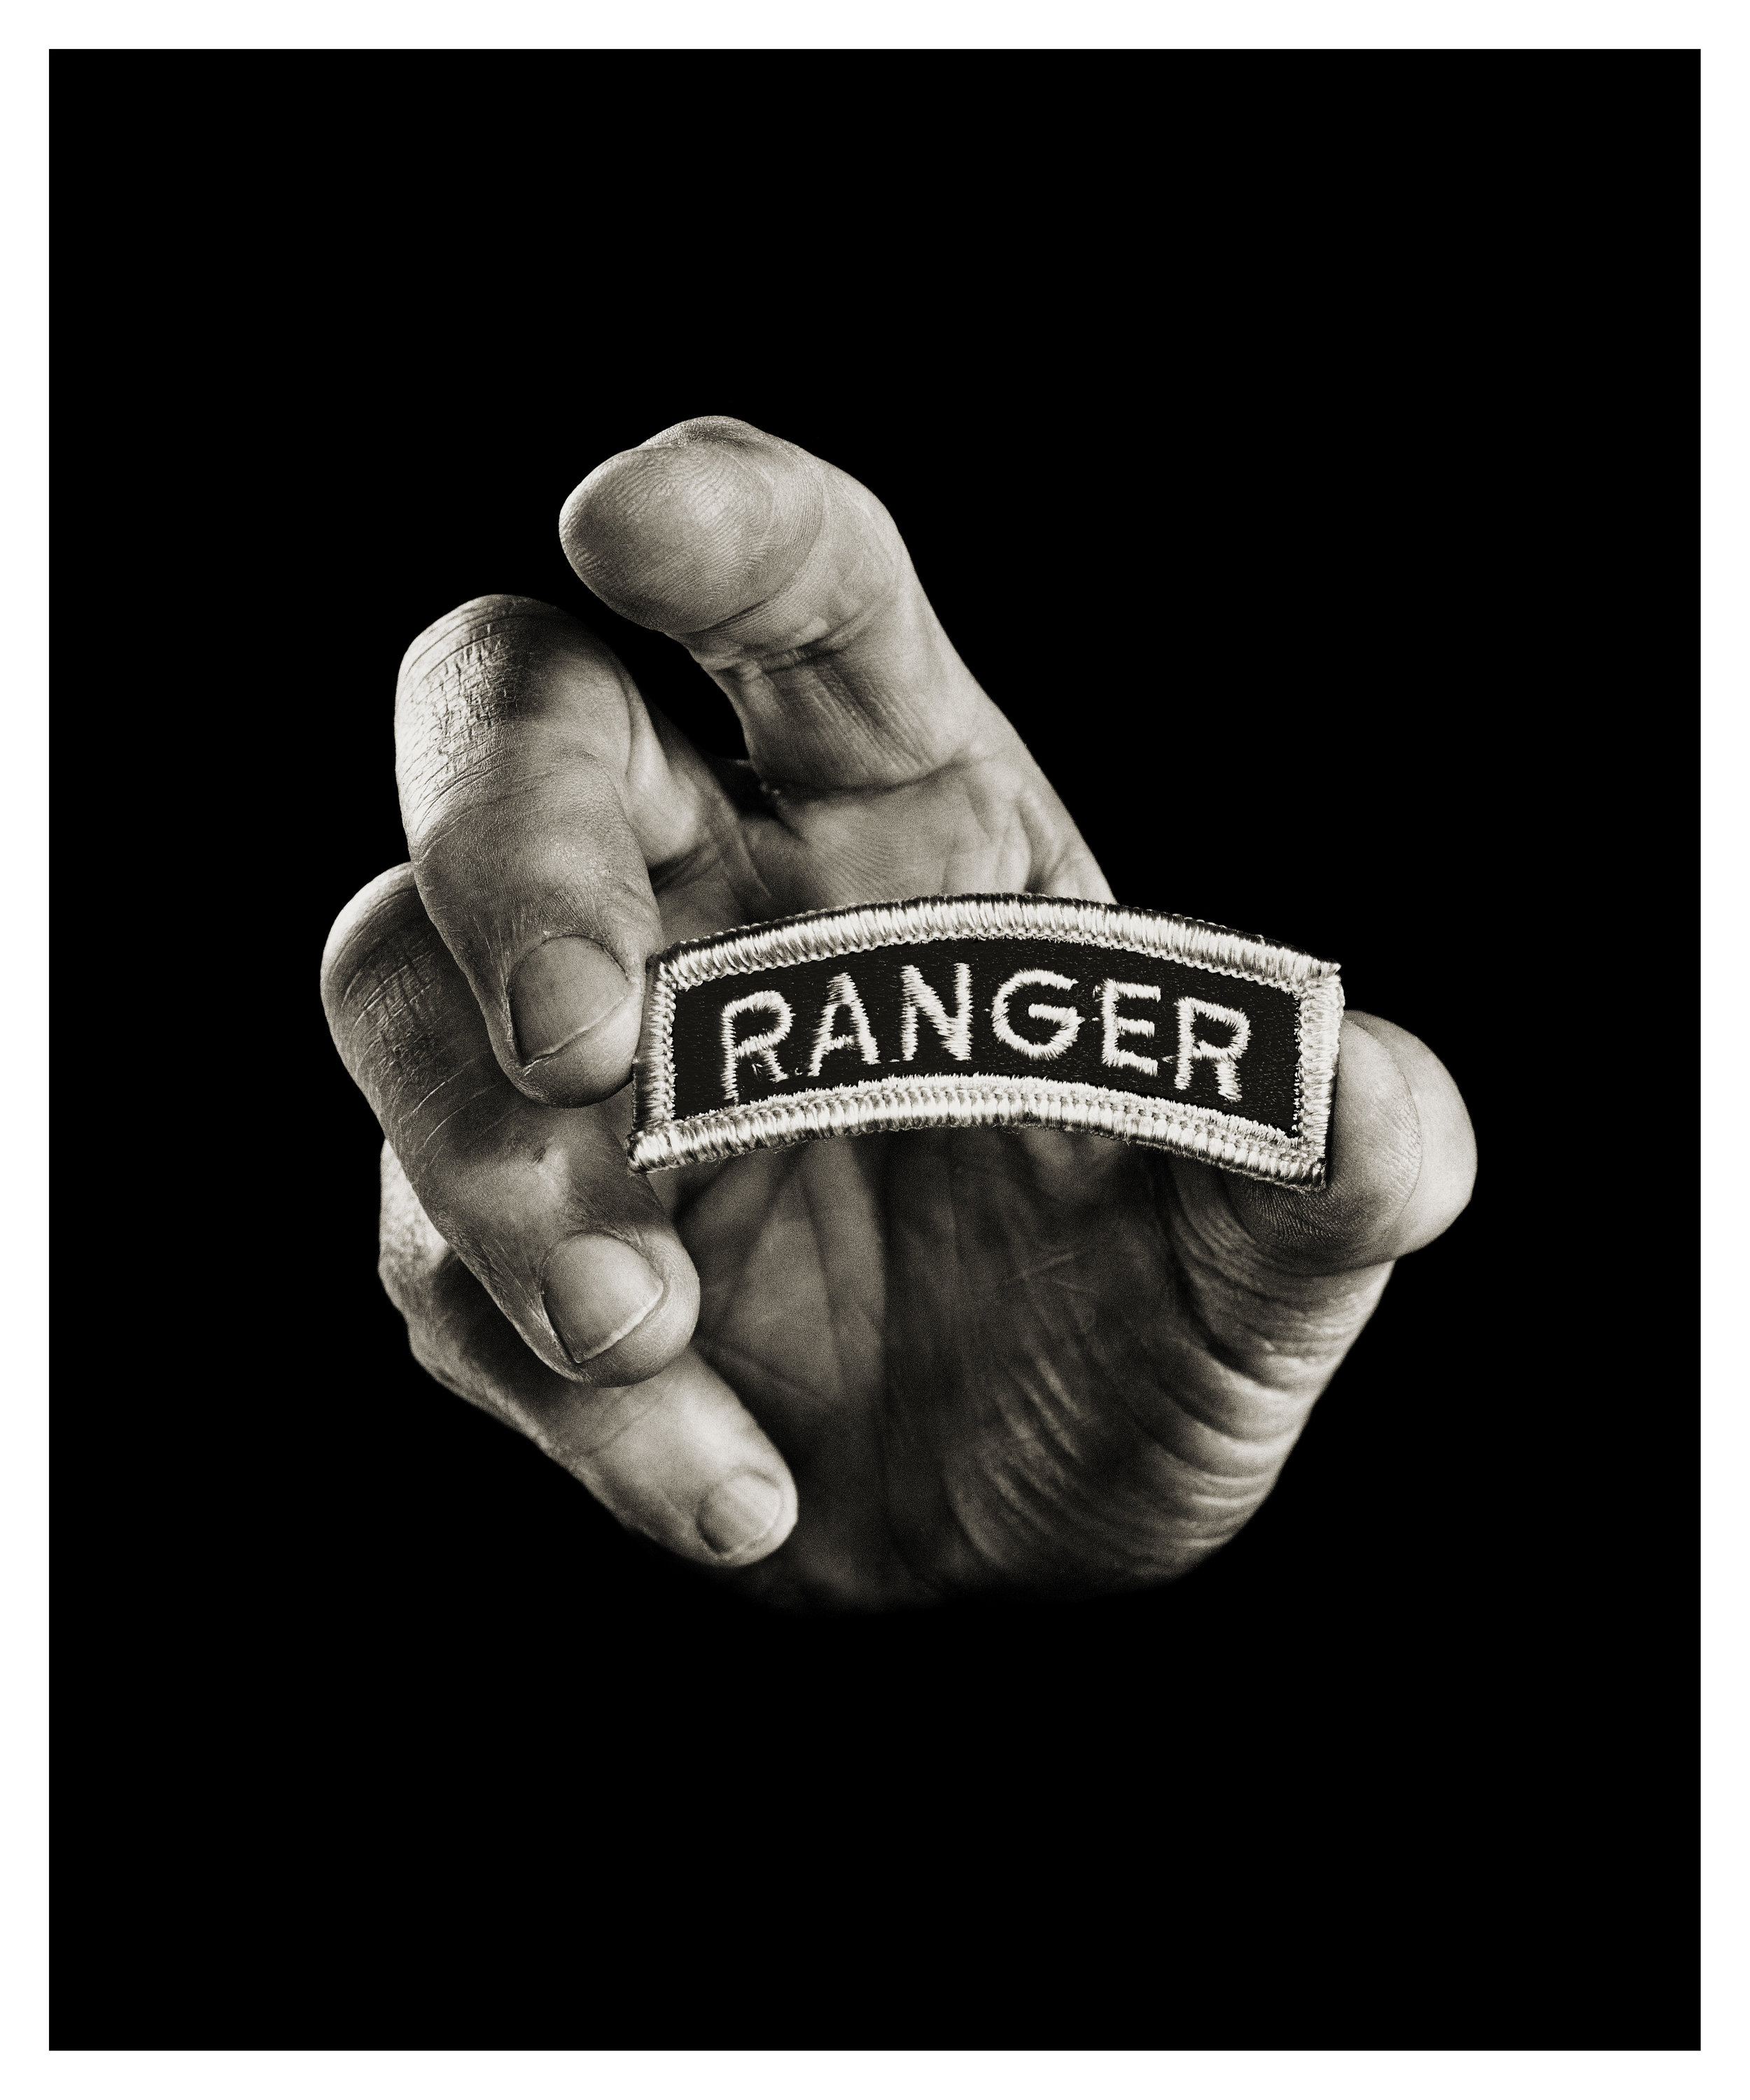 U.S. Army Ranger Patch